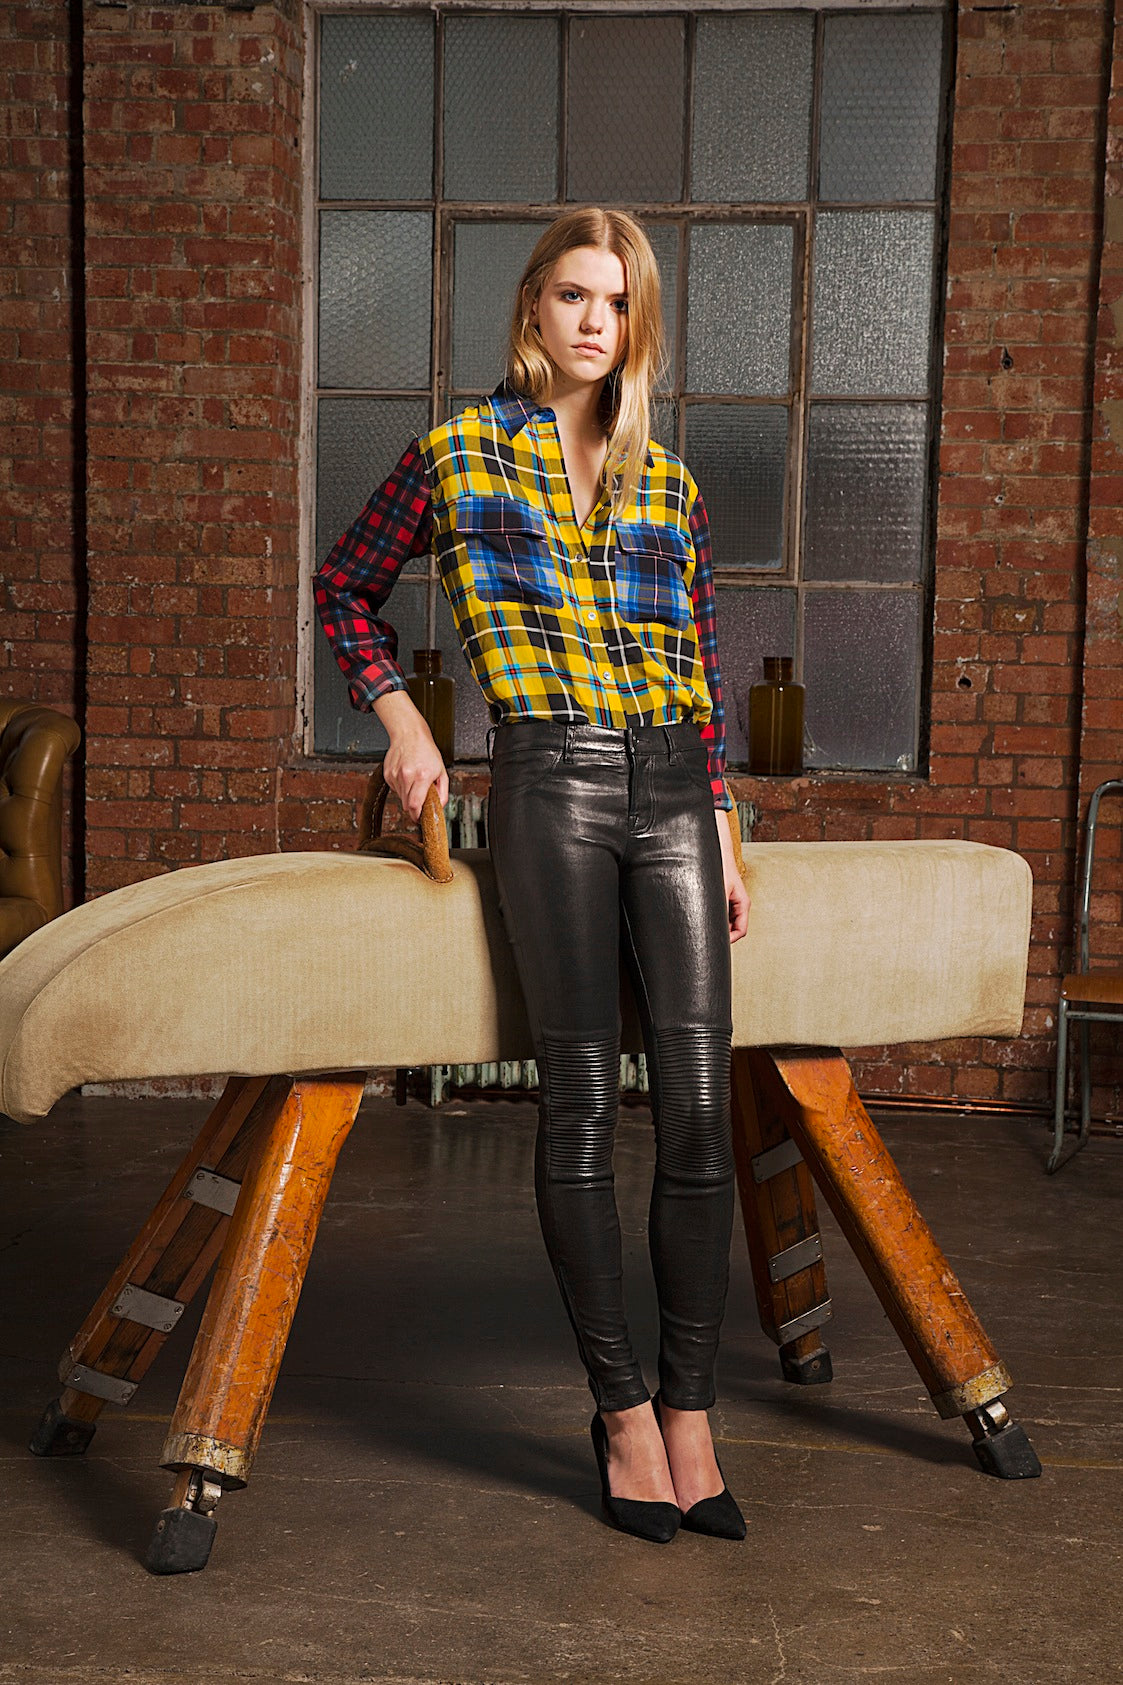 donna ida, london fashion, london style, tartan shirt, printed shirt, blouse, skinny jeans, black skinny leather jeans, leather trousers, shoes